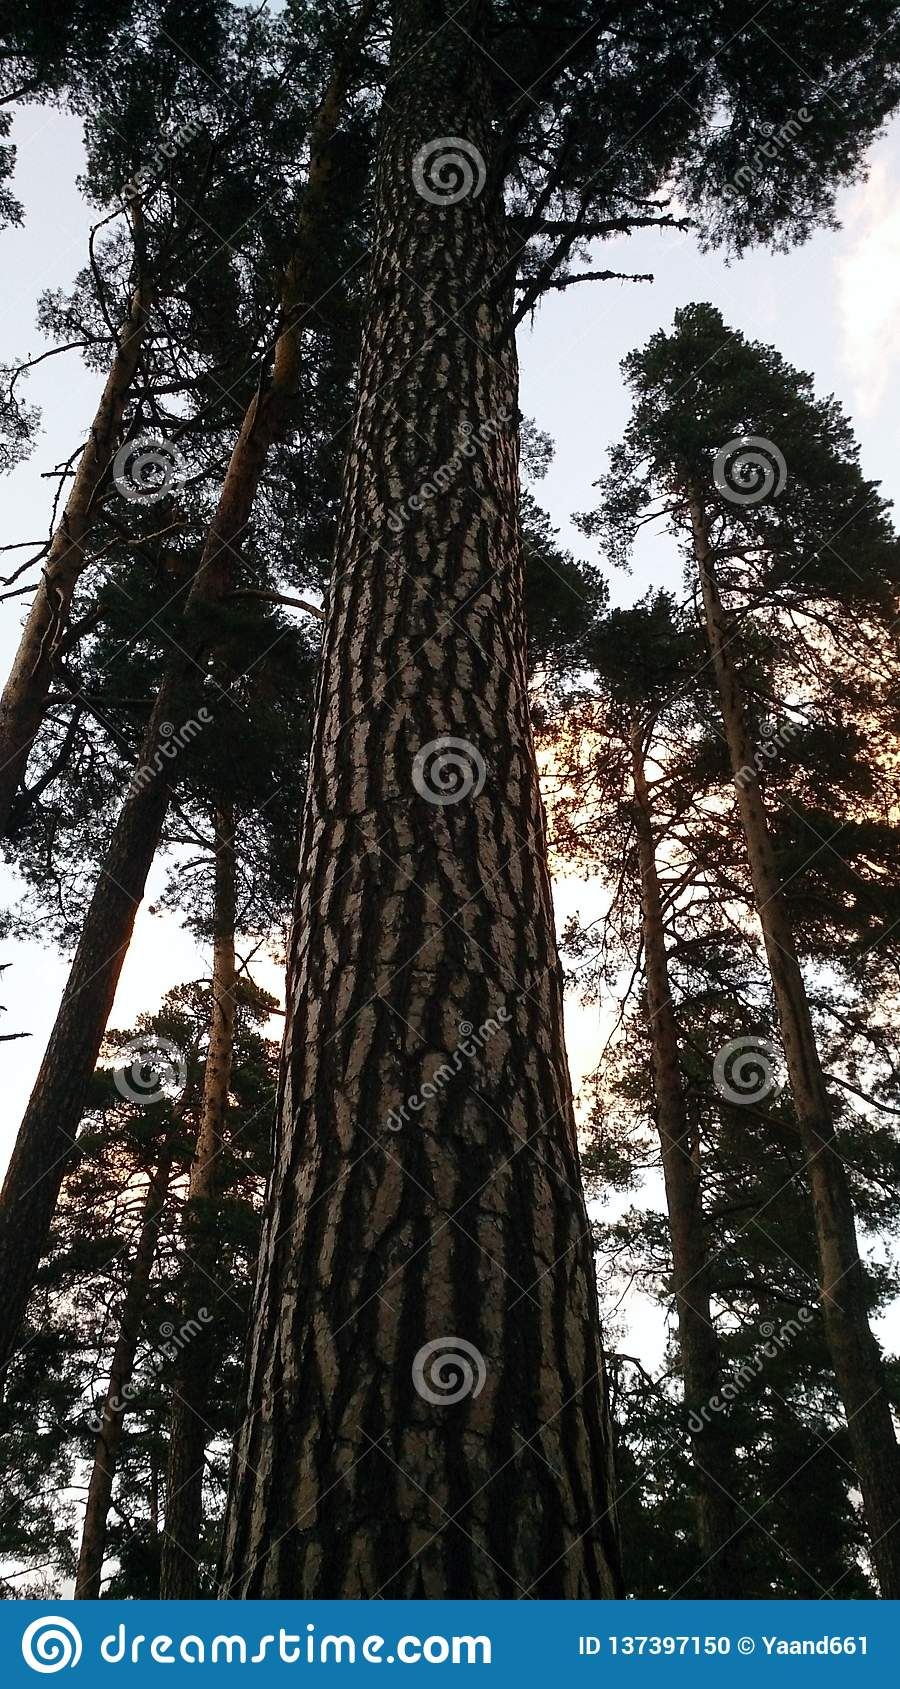 Centuries-old pines against the sky